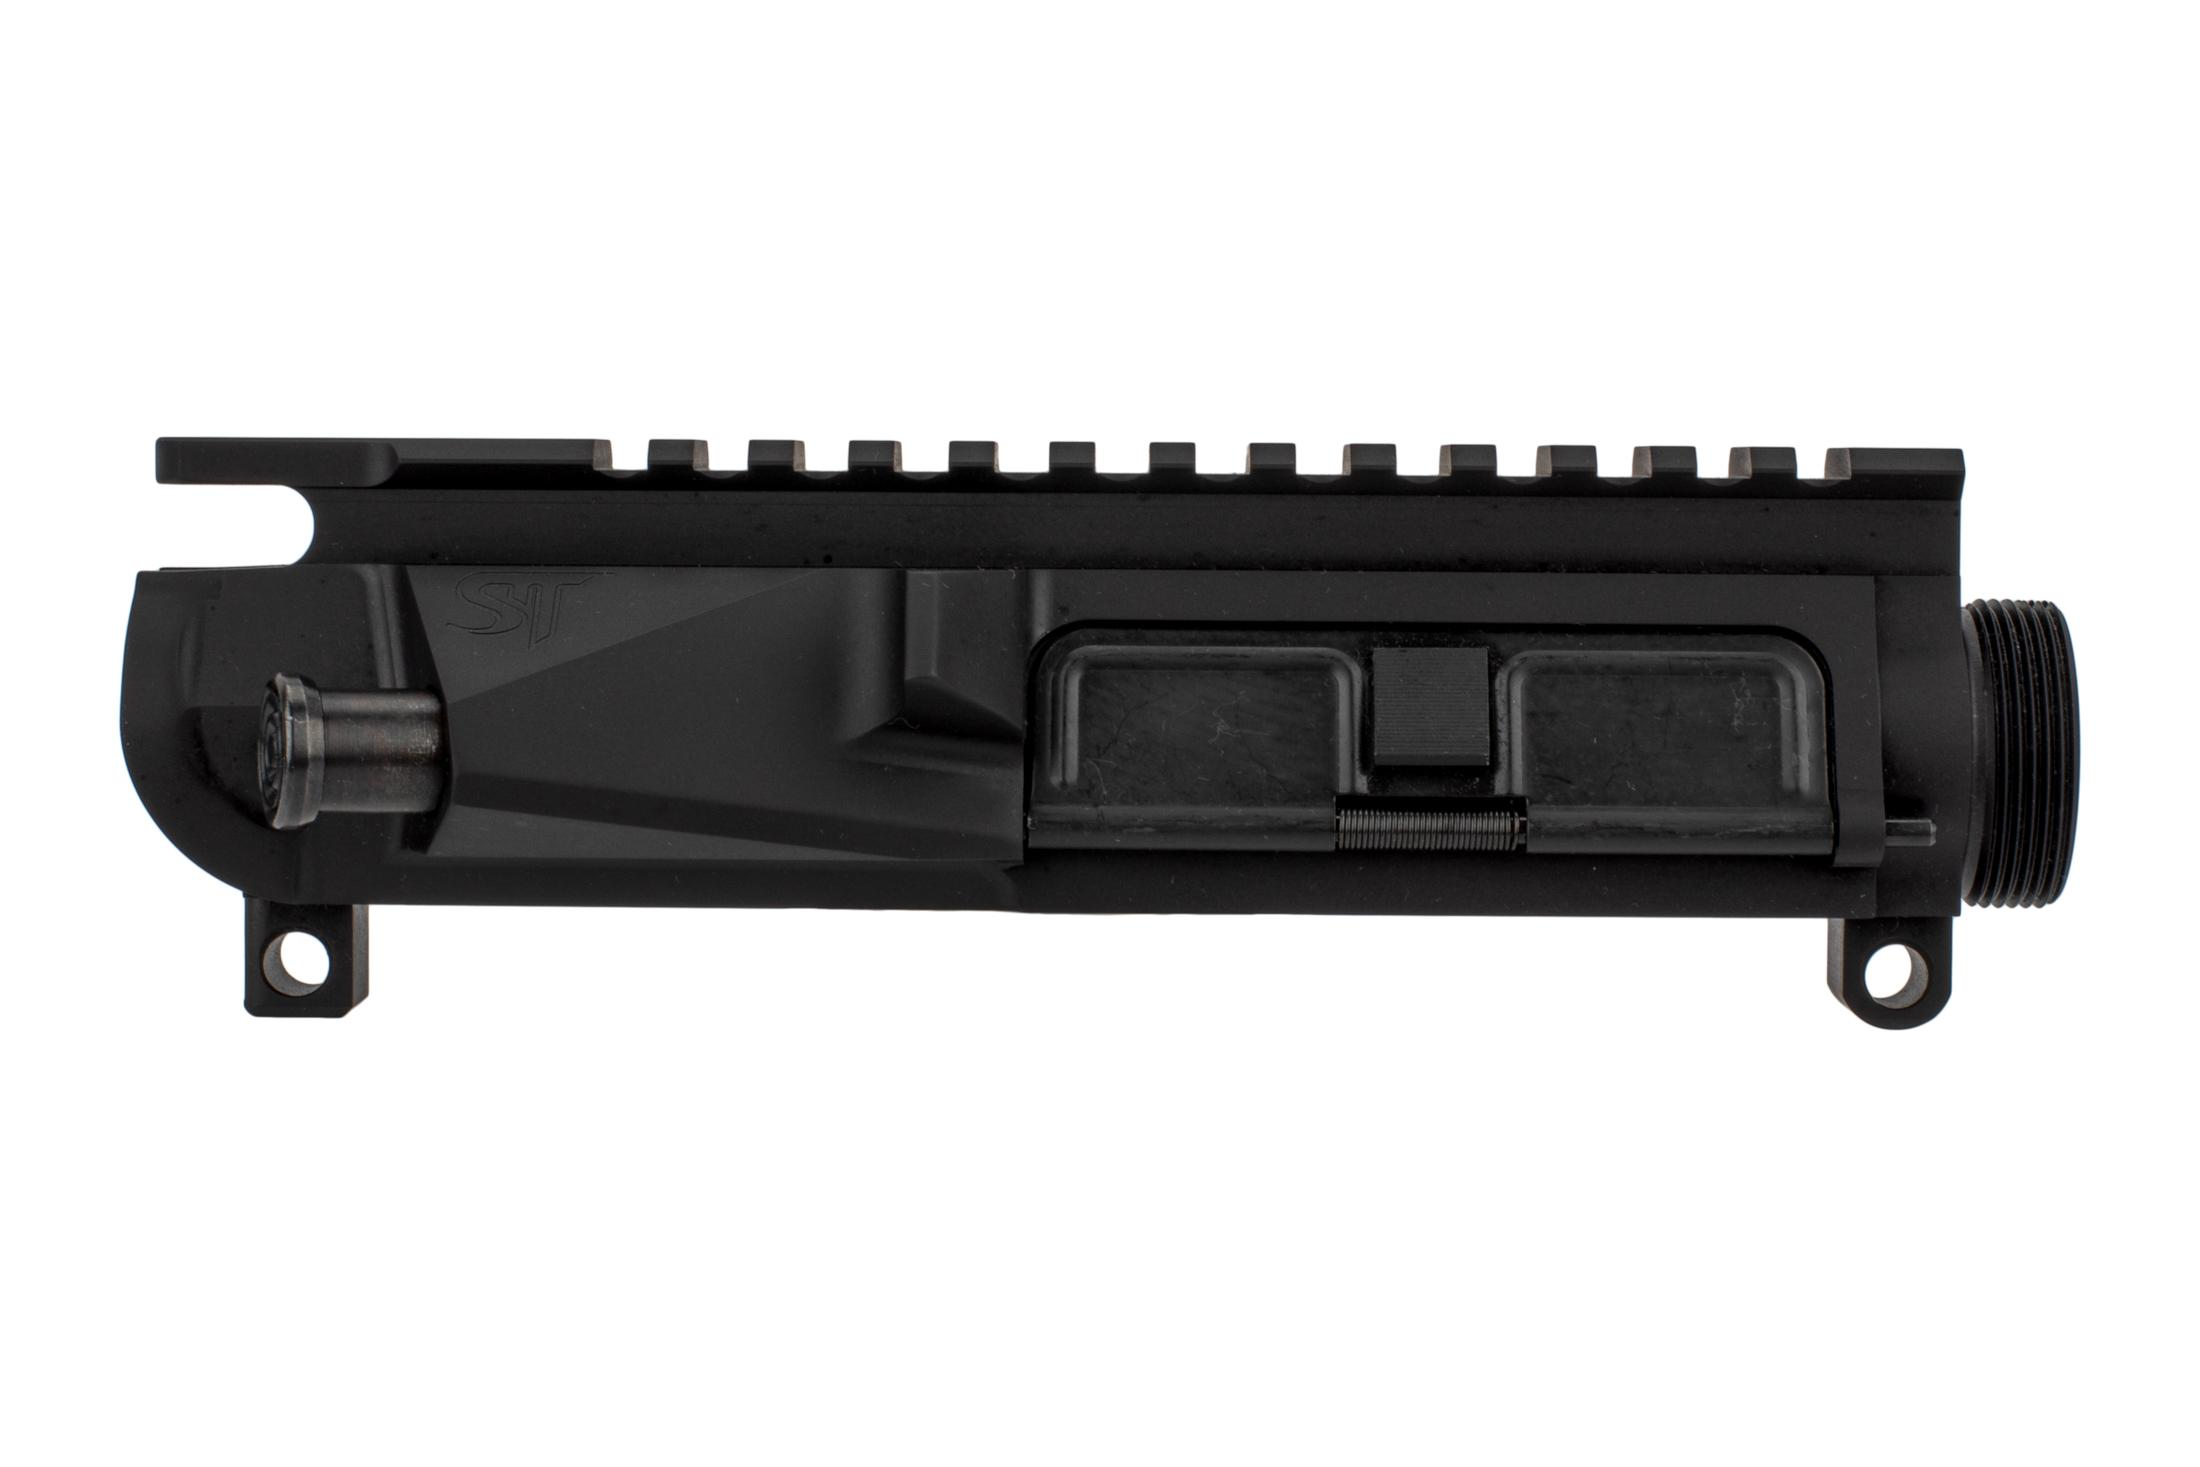 San Tan Tactical billet PILLAR AR-15 upper receiver is 3D CAD designed for weight savings without losing features